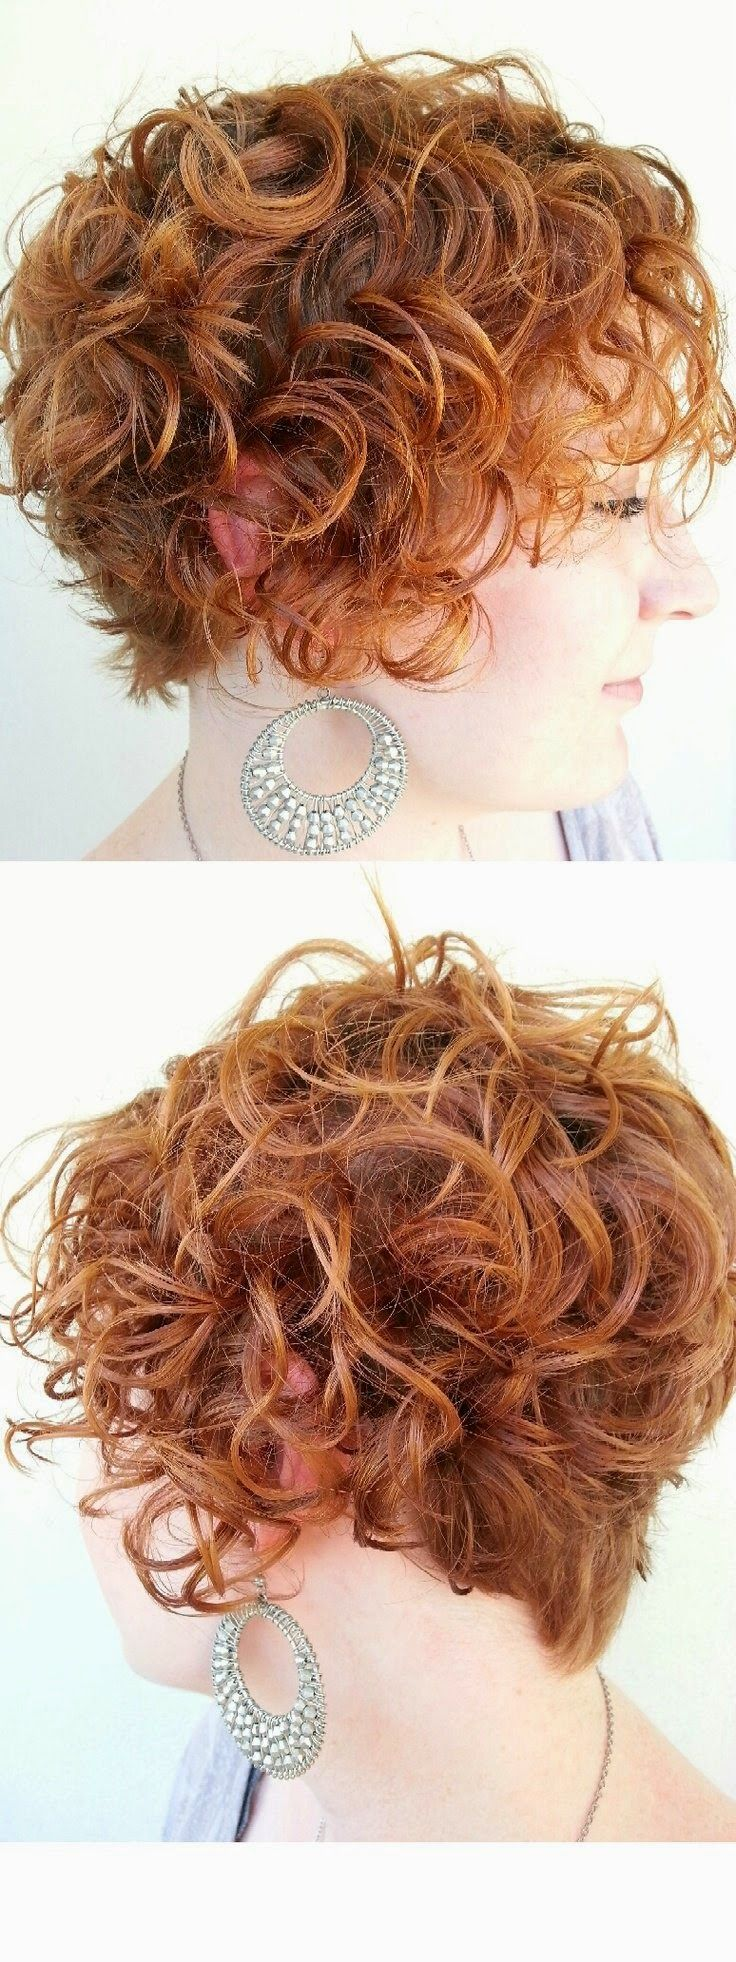 cute Short Curly Hair Ideas 2014